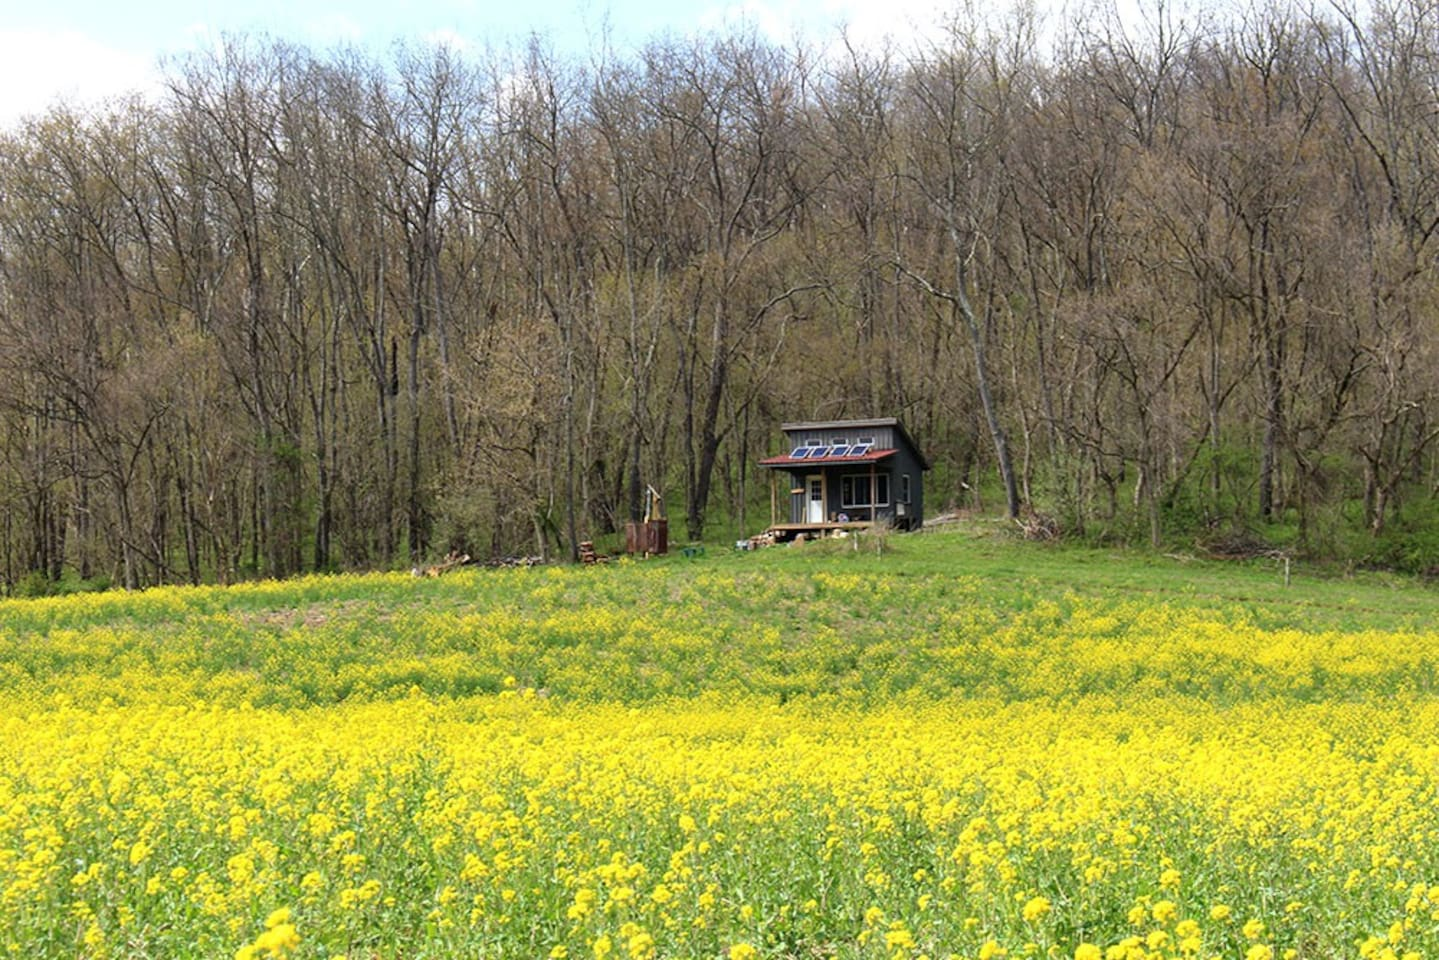 Off-grid, solar- powered, tiny-house seclusion! Springtime at Redbud Farm Nature Reserve.